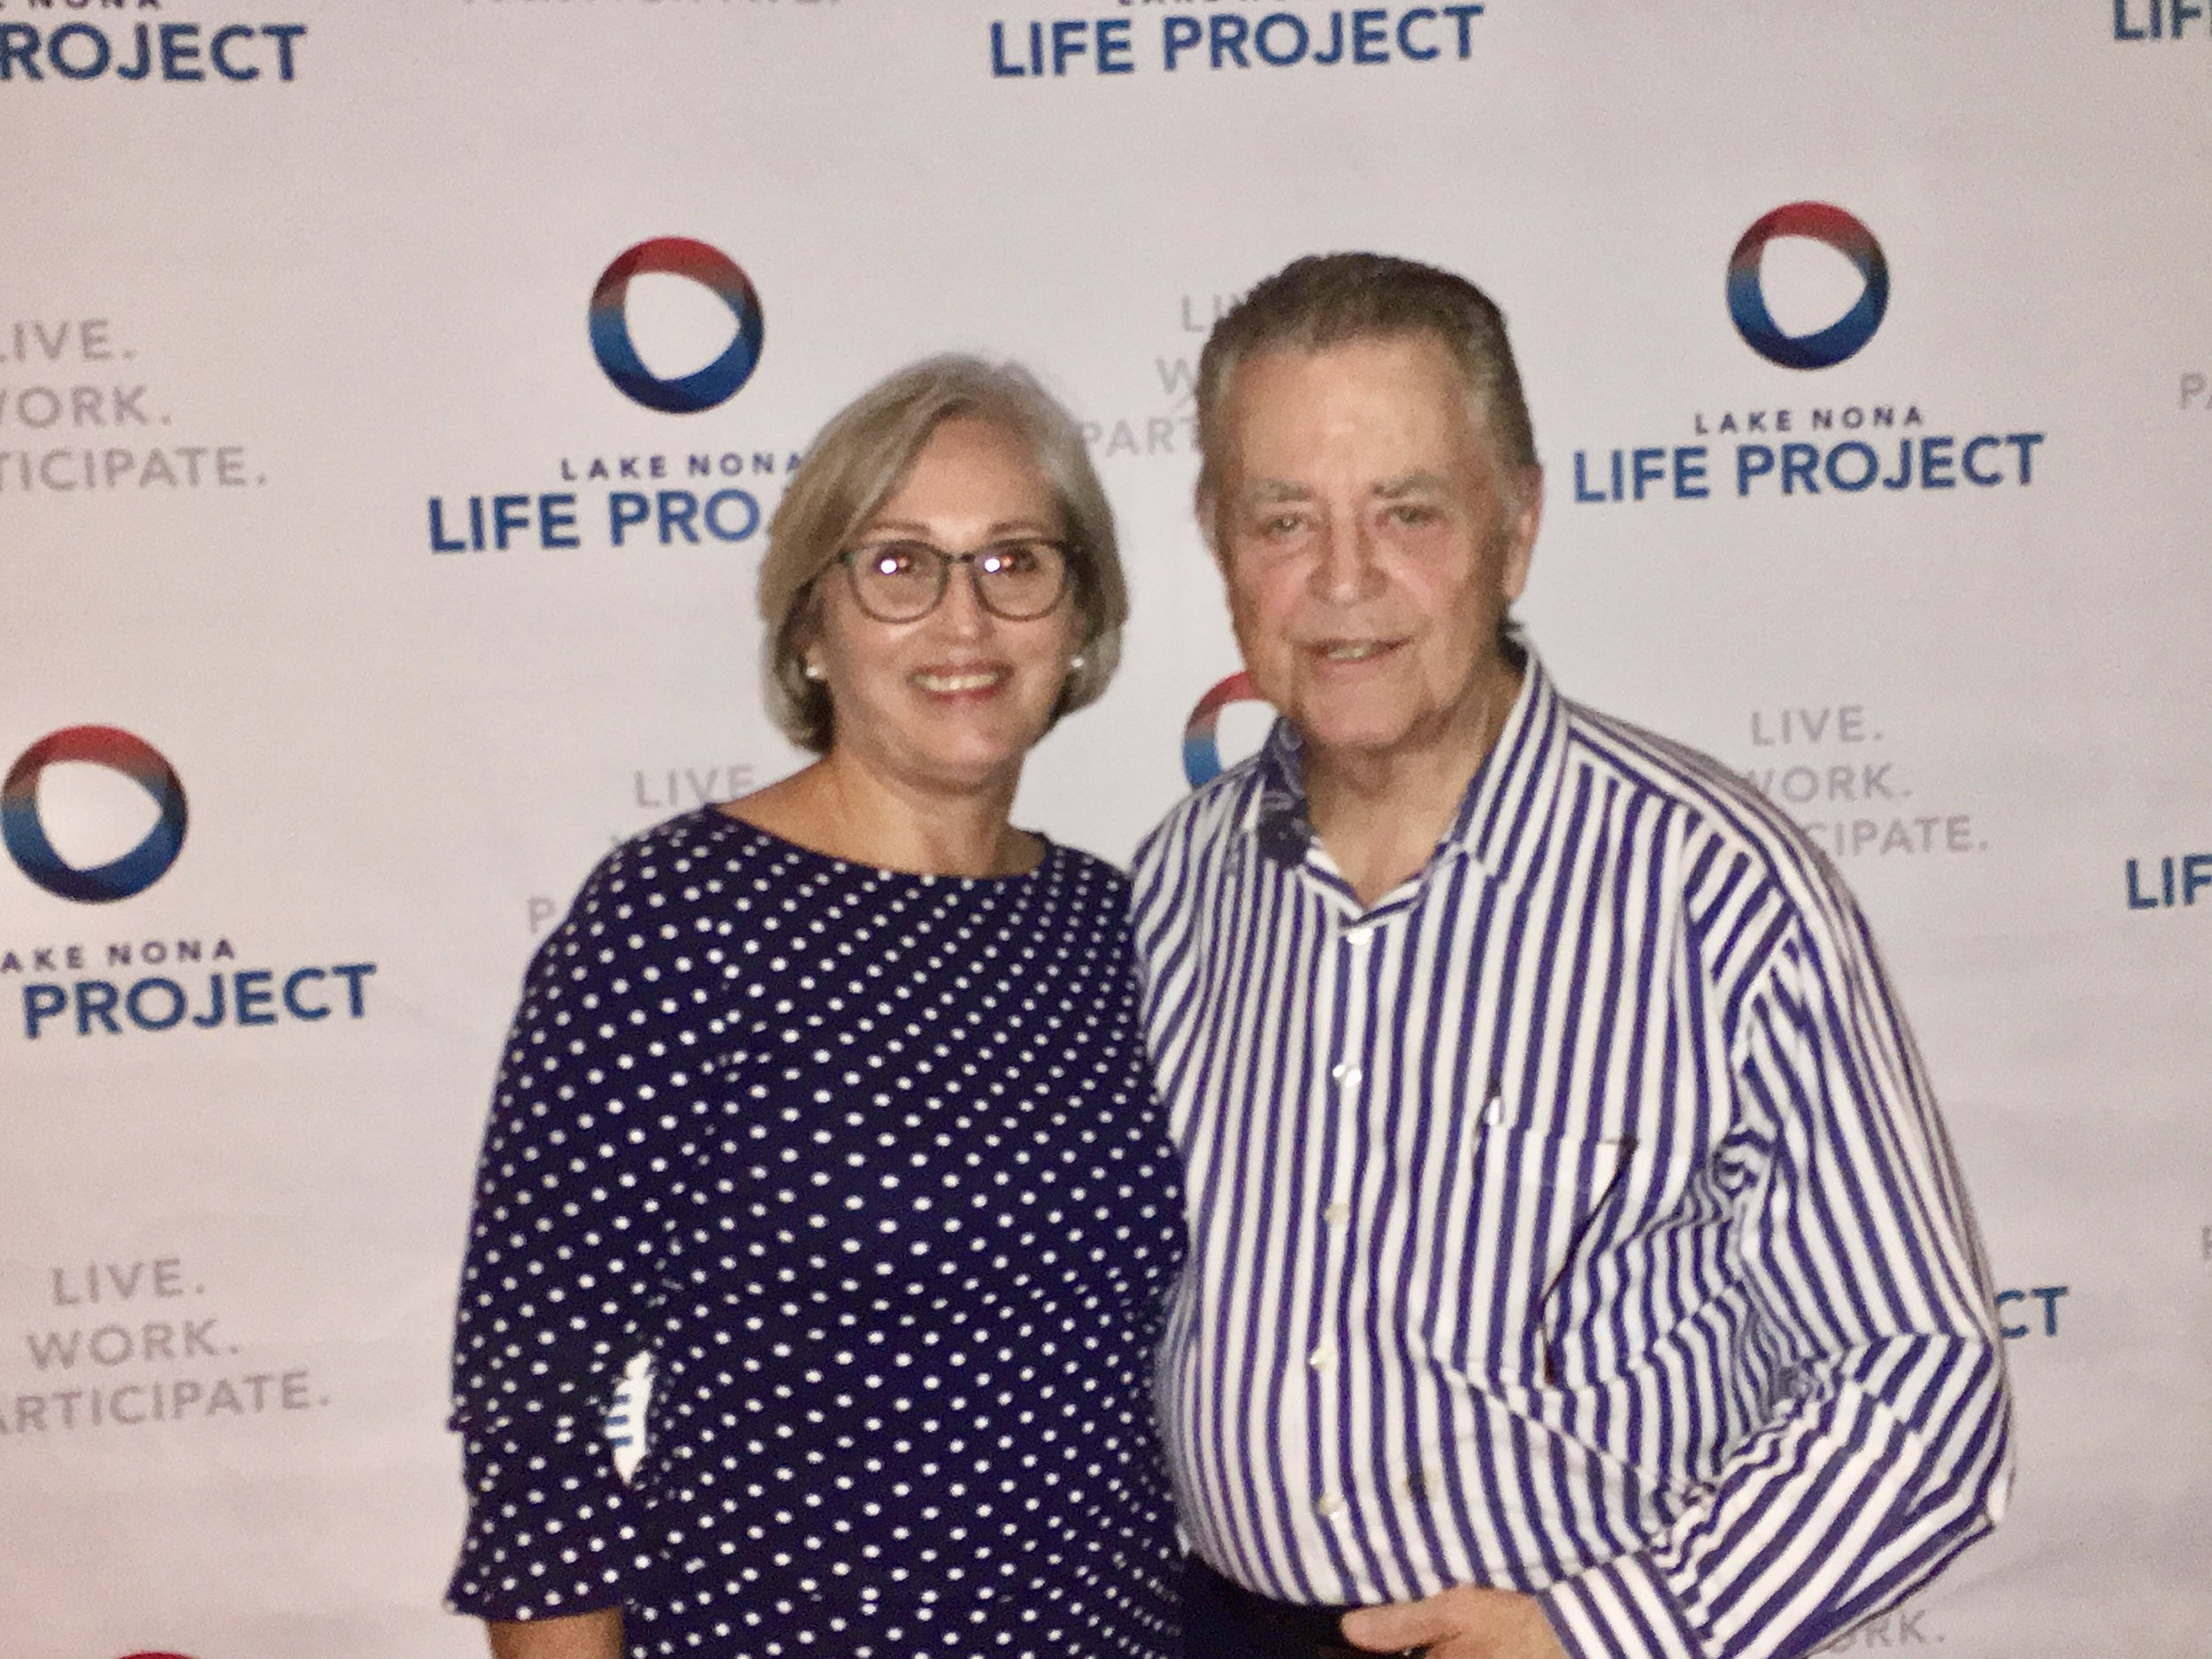 Life Project Champs Harrison & Claudia Greene at Champ event